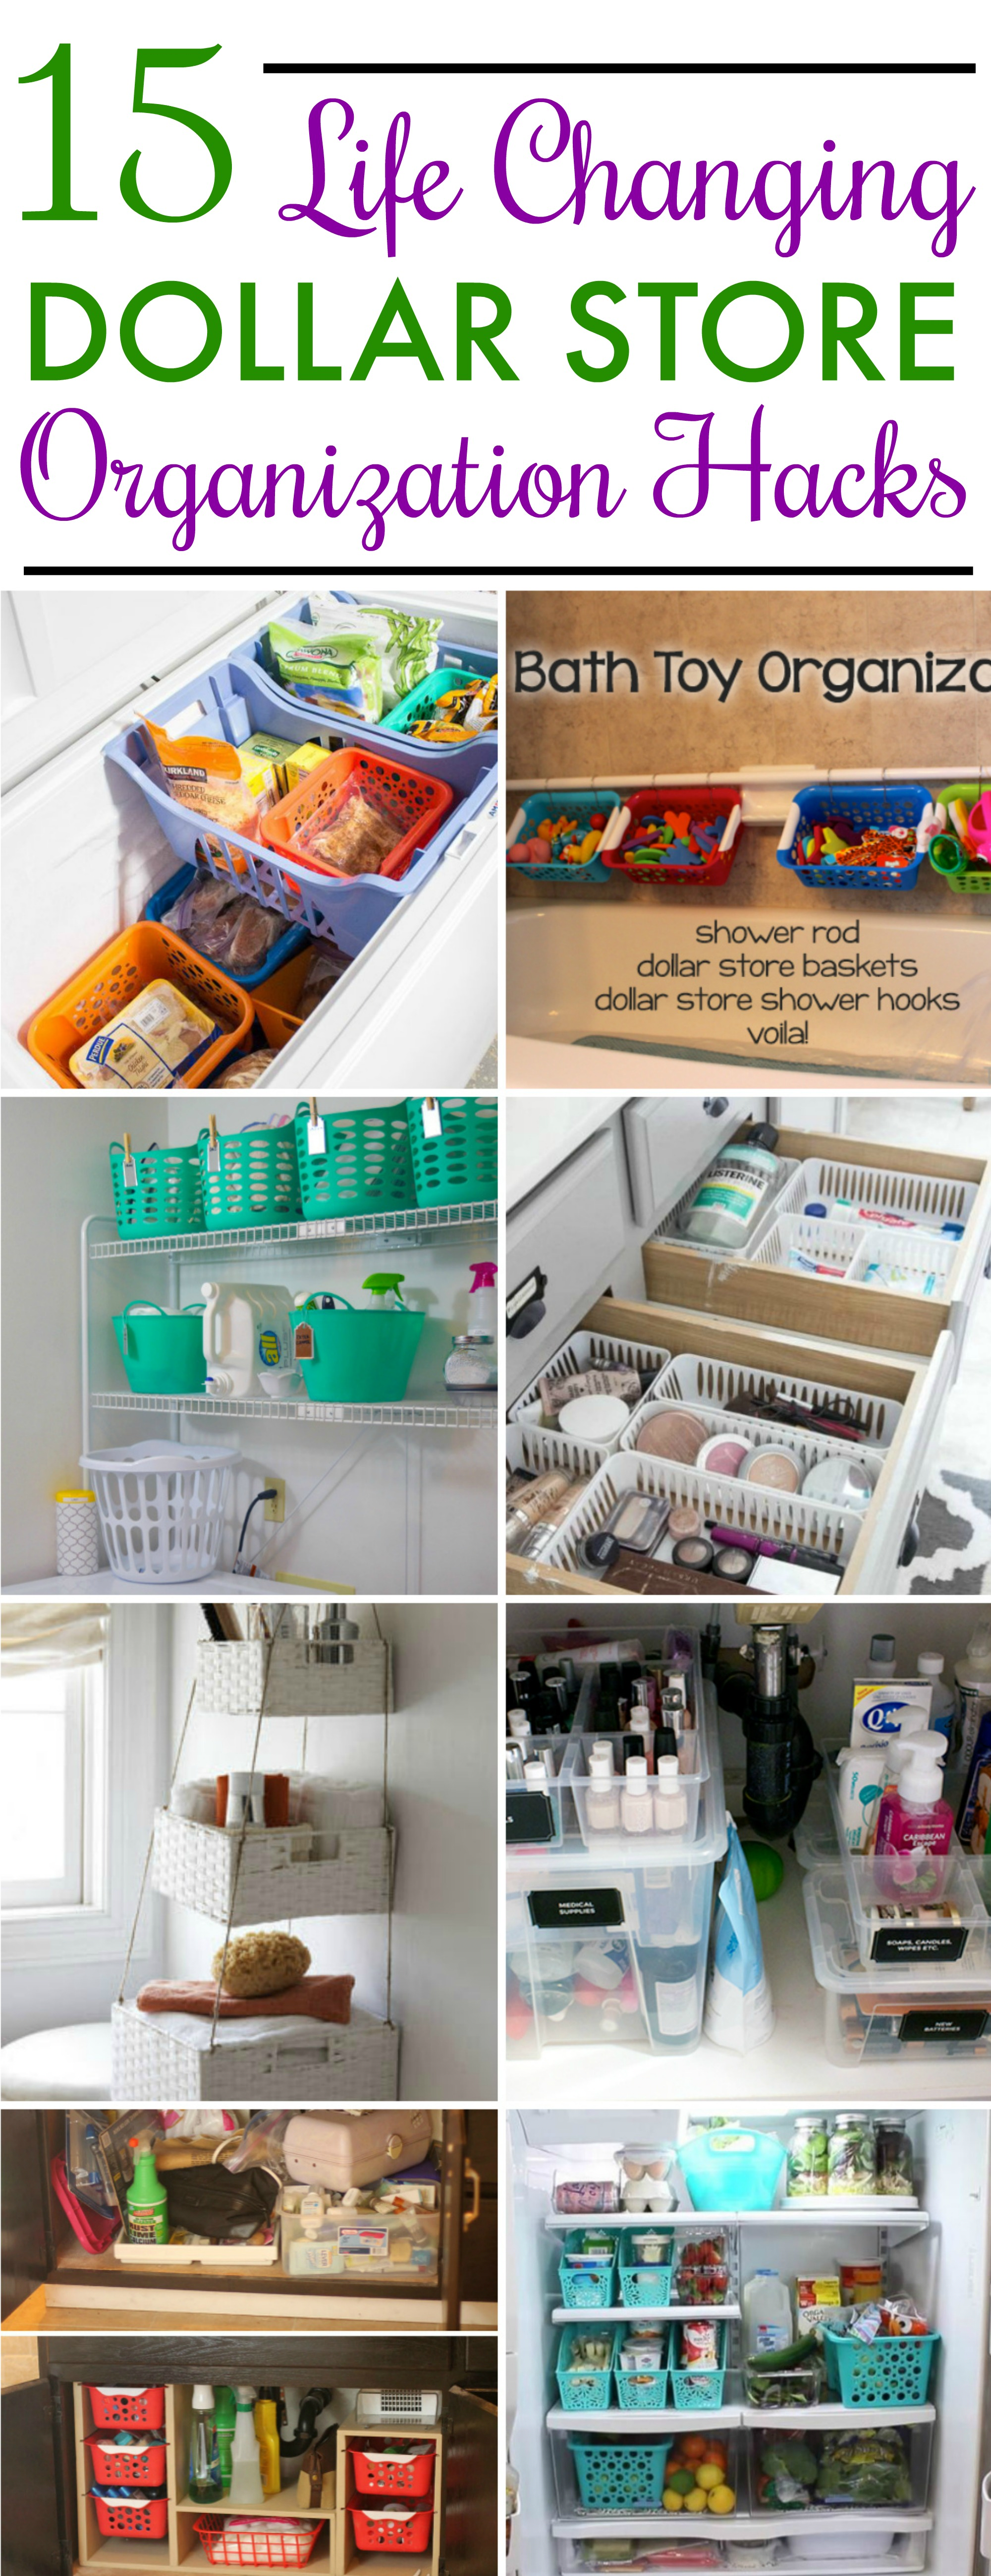 15 Dollar Store Organization Ideas For Every Area In Your Home